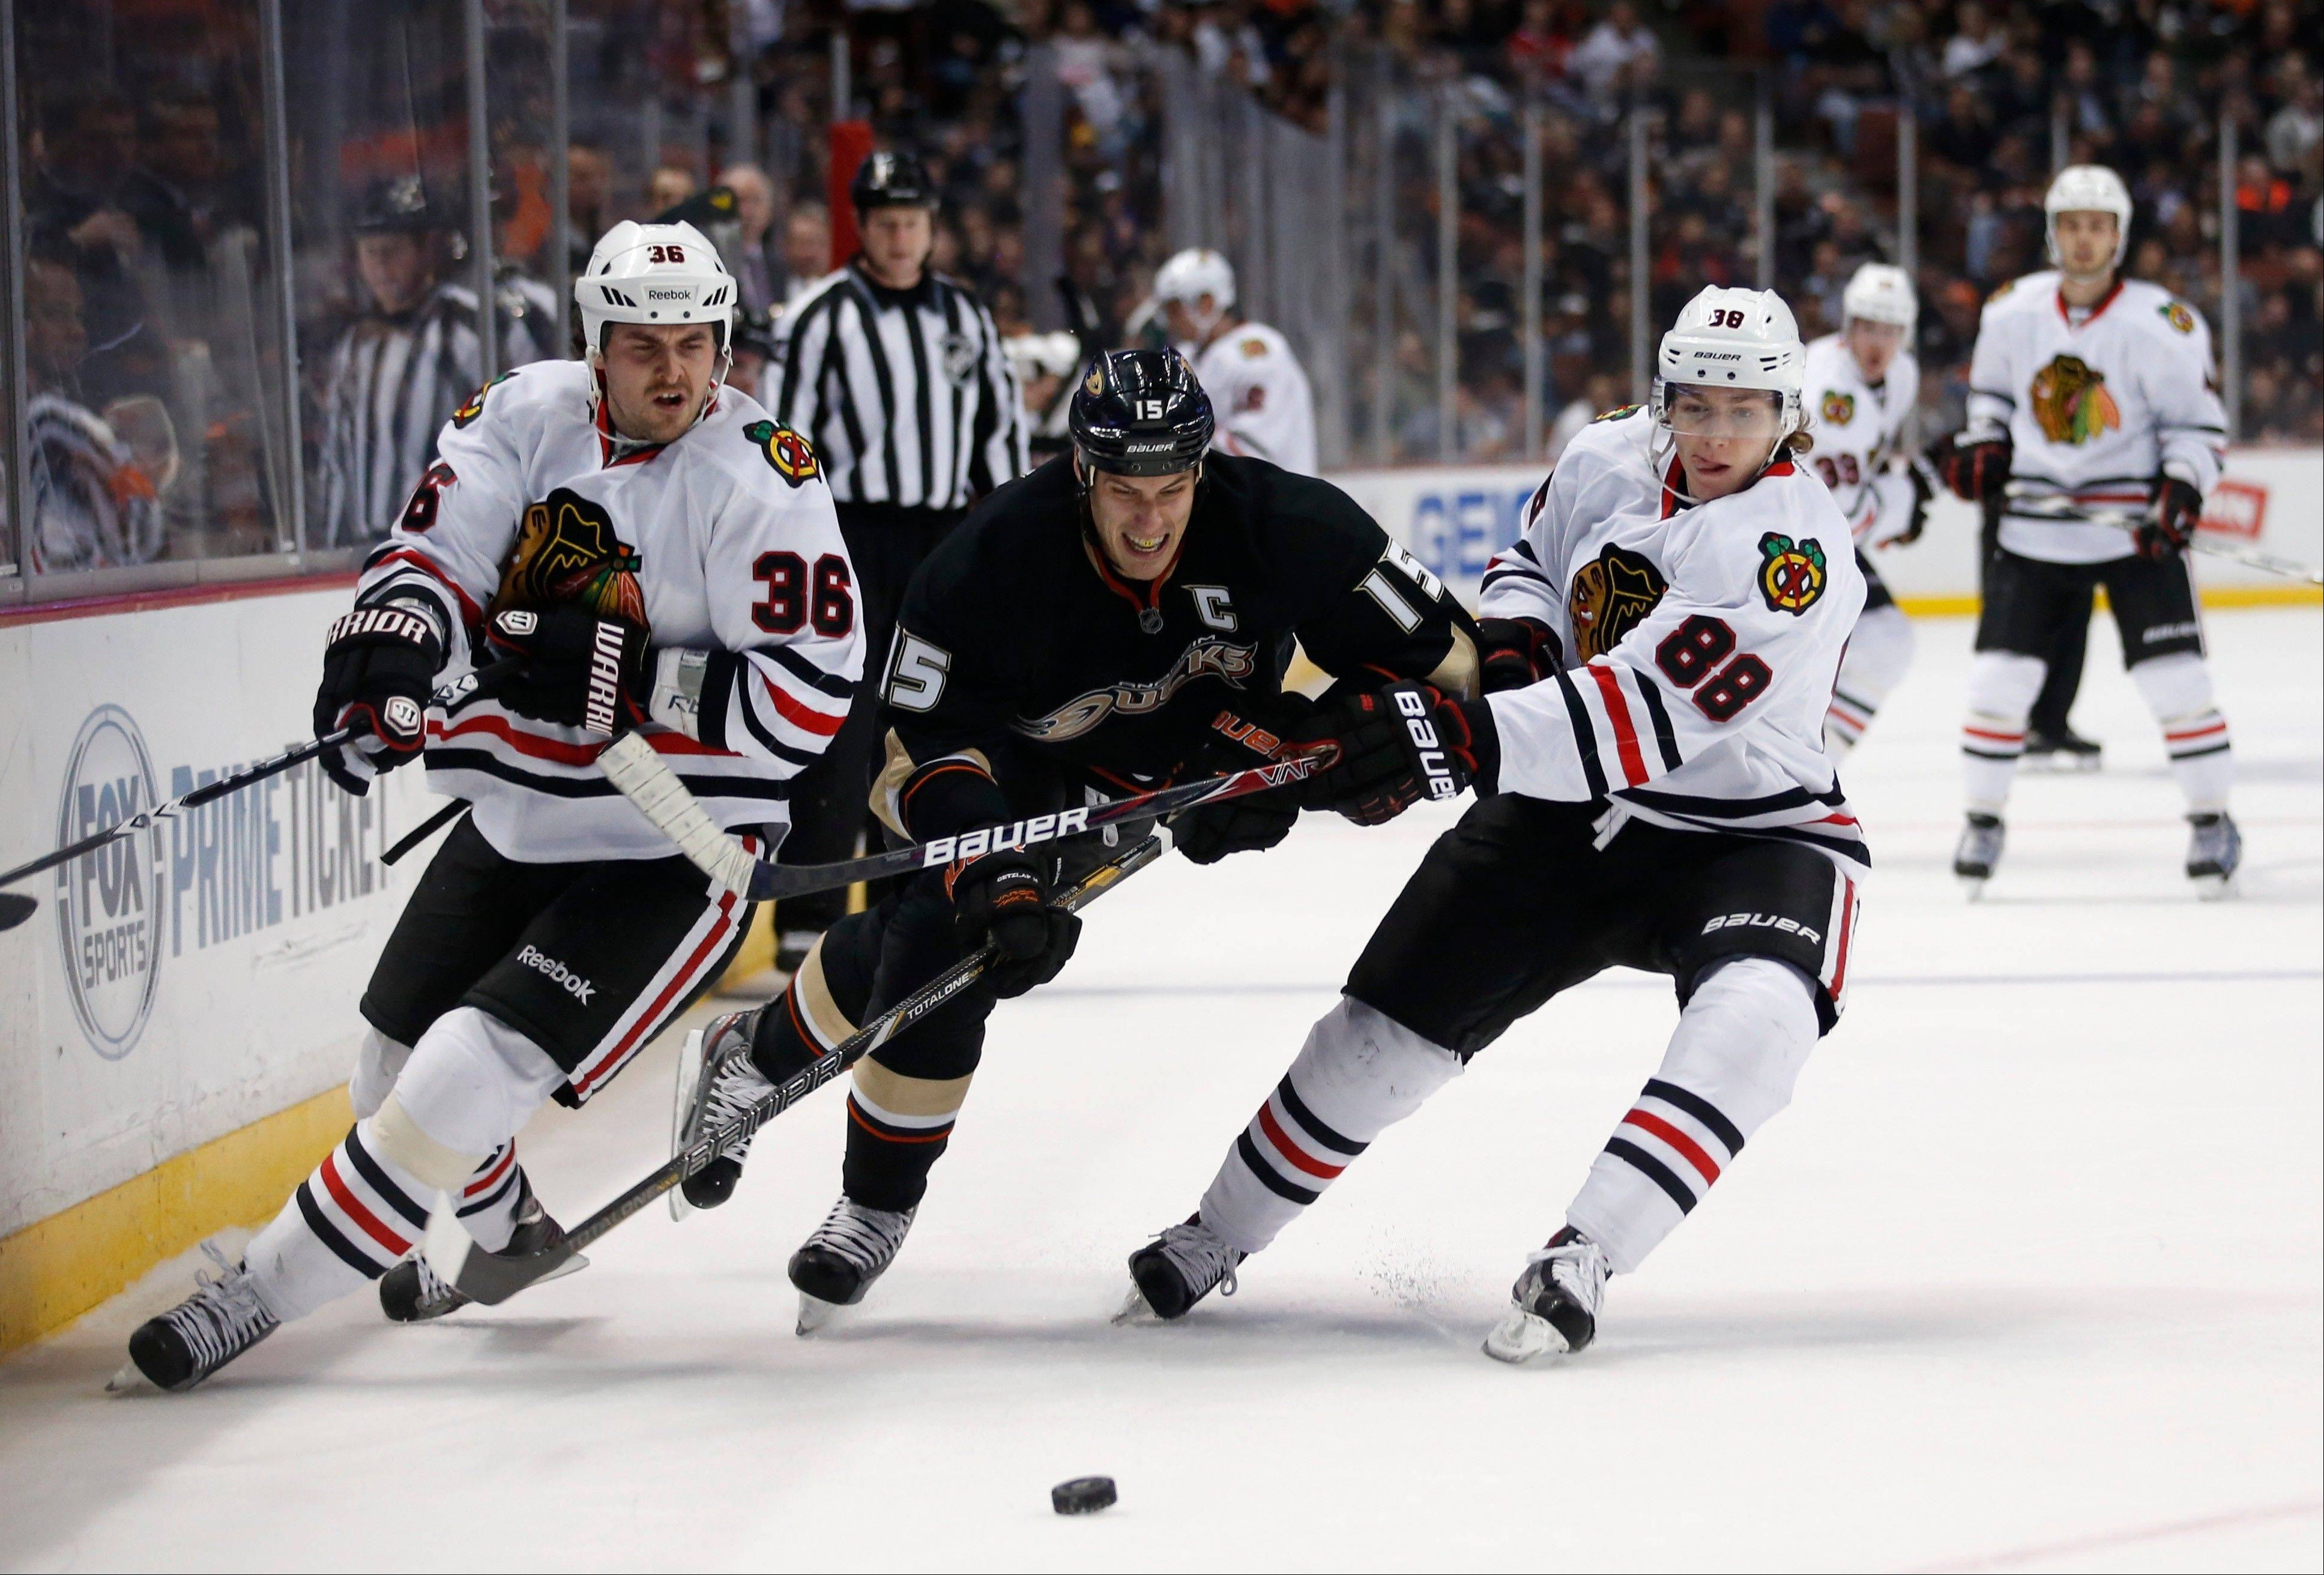 Patrick Kane, right, played more than 25 minutes Wednesday against the Anaheim Ducks, the longest stint of anyone on the Hawks. Ryan Getzlaf, center, led Anaheim's charge in the third period with two assists.